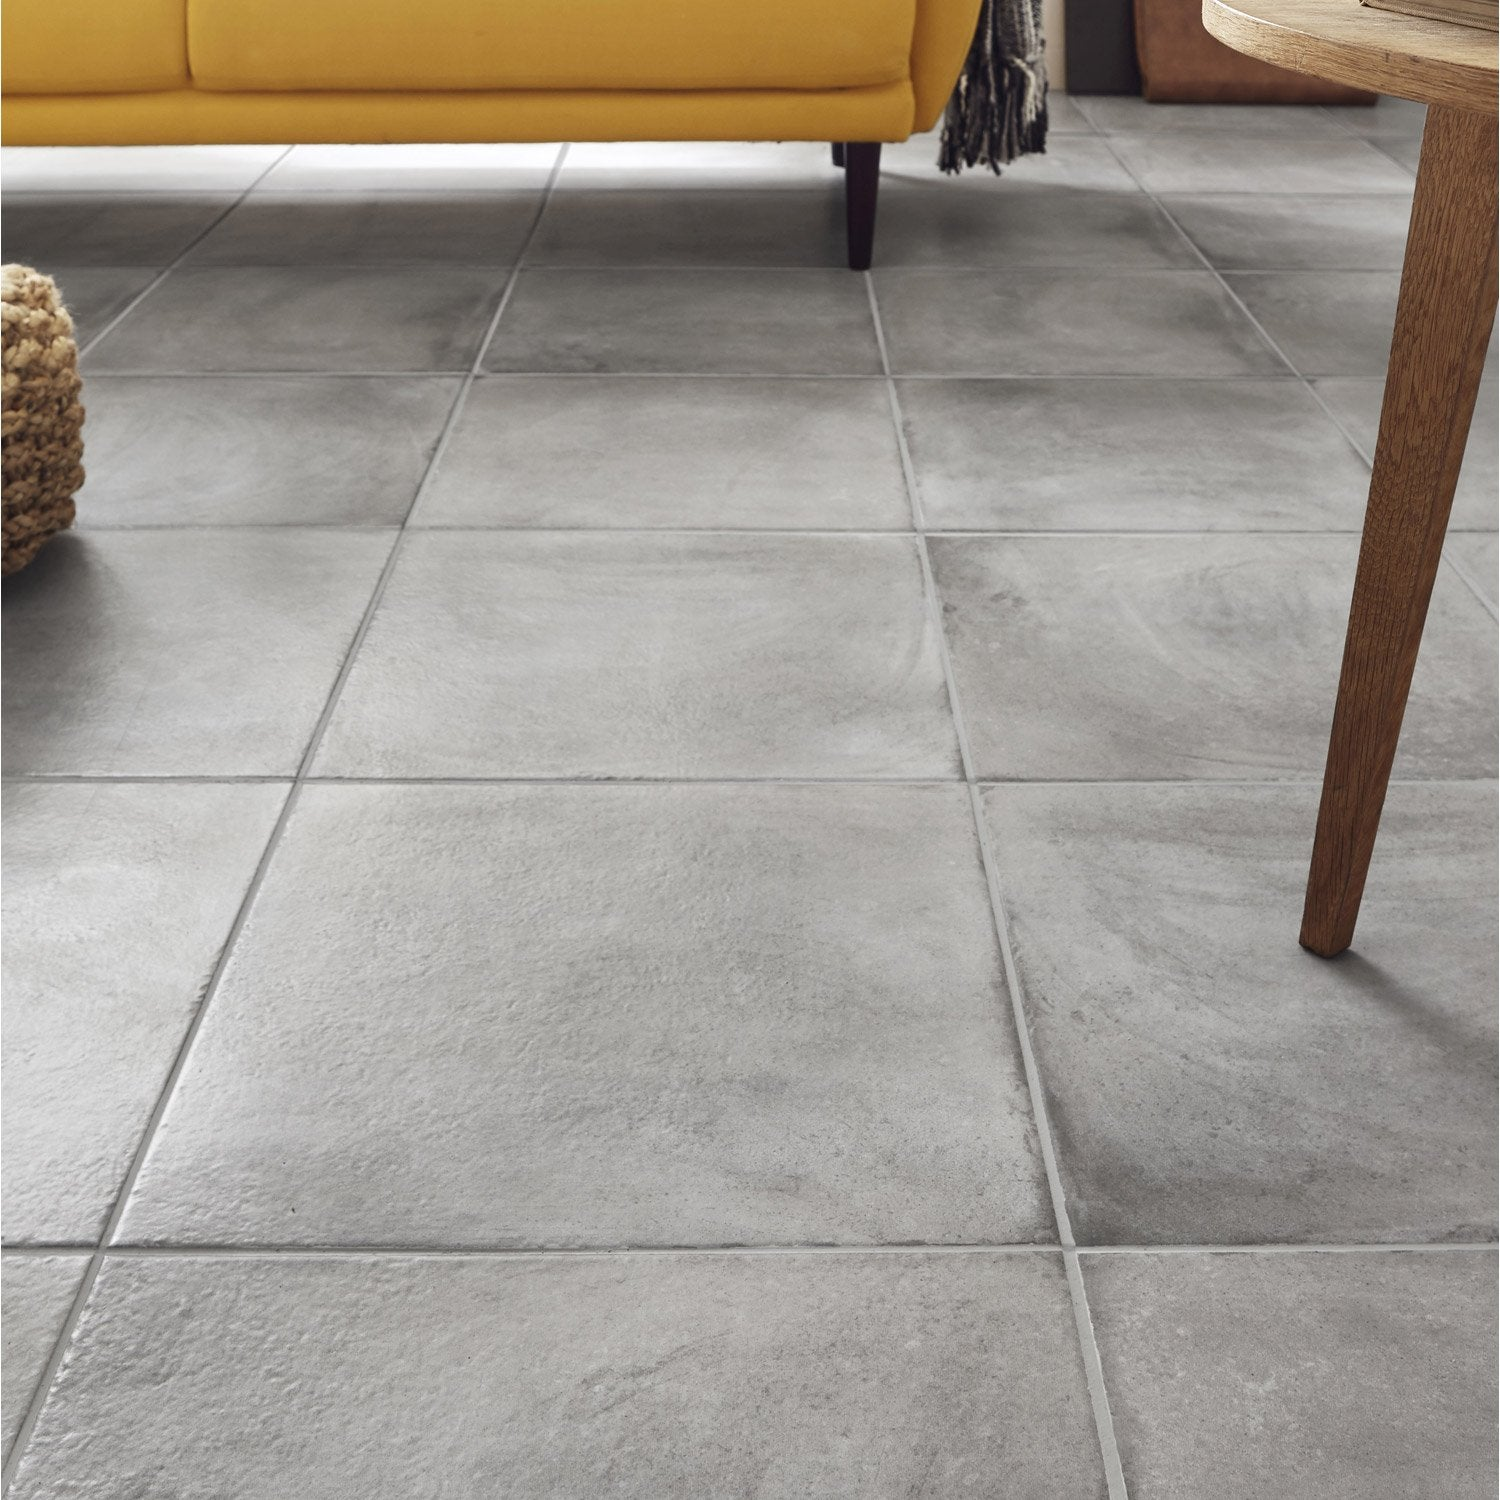 Carrelage sol gris effet b ton x cm leroy merlin for Table exterieur weldom